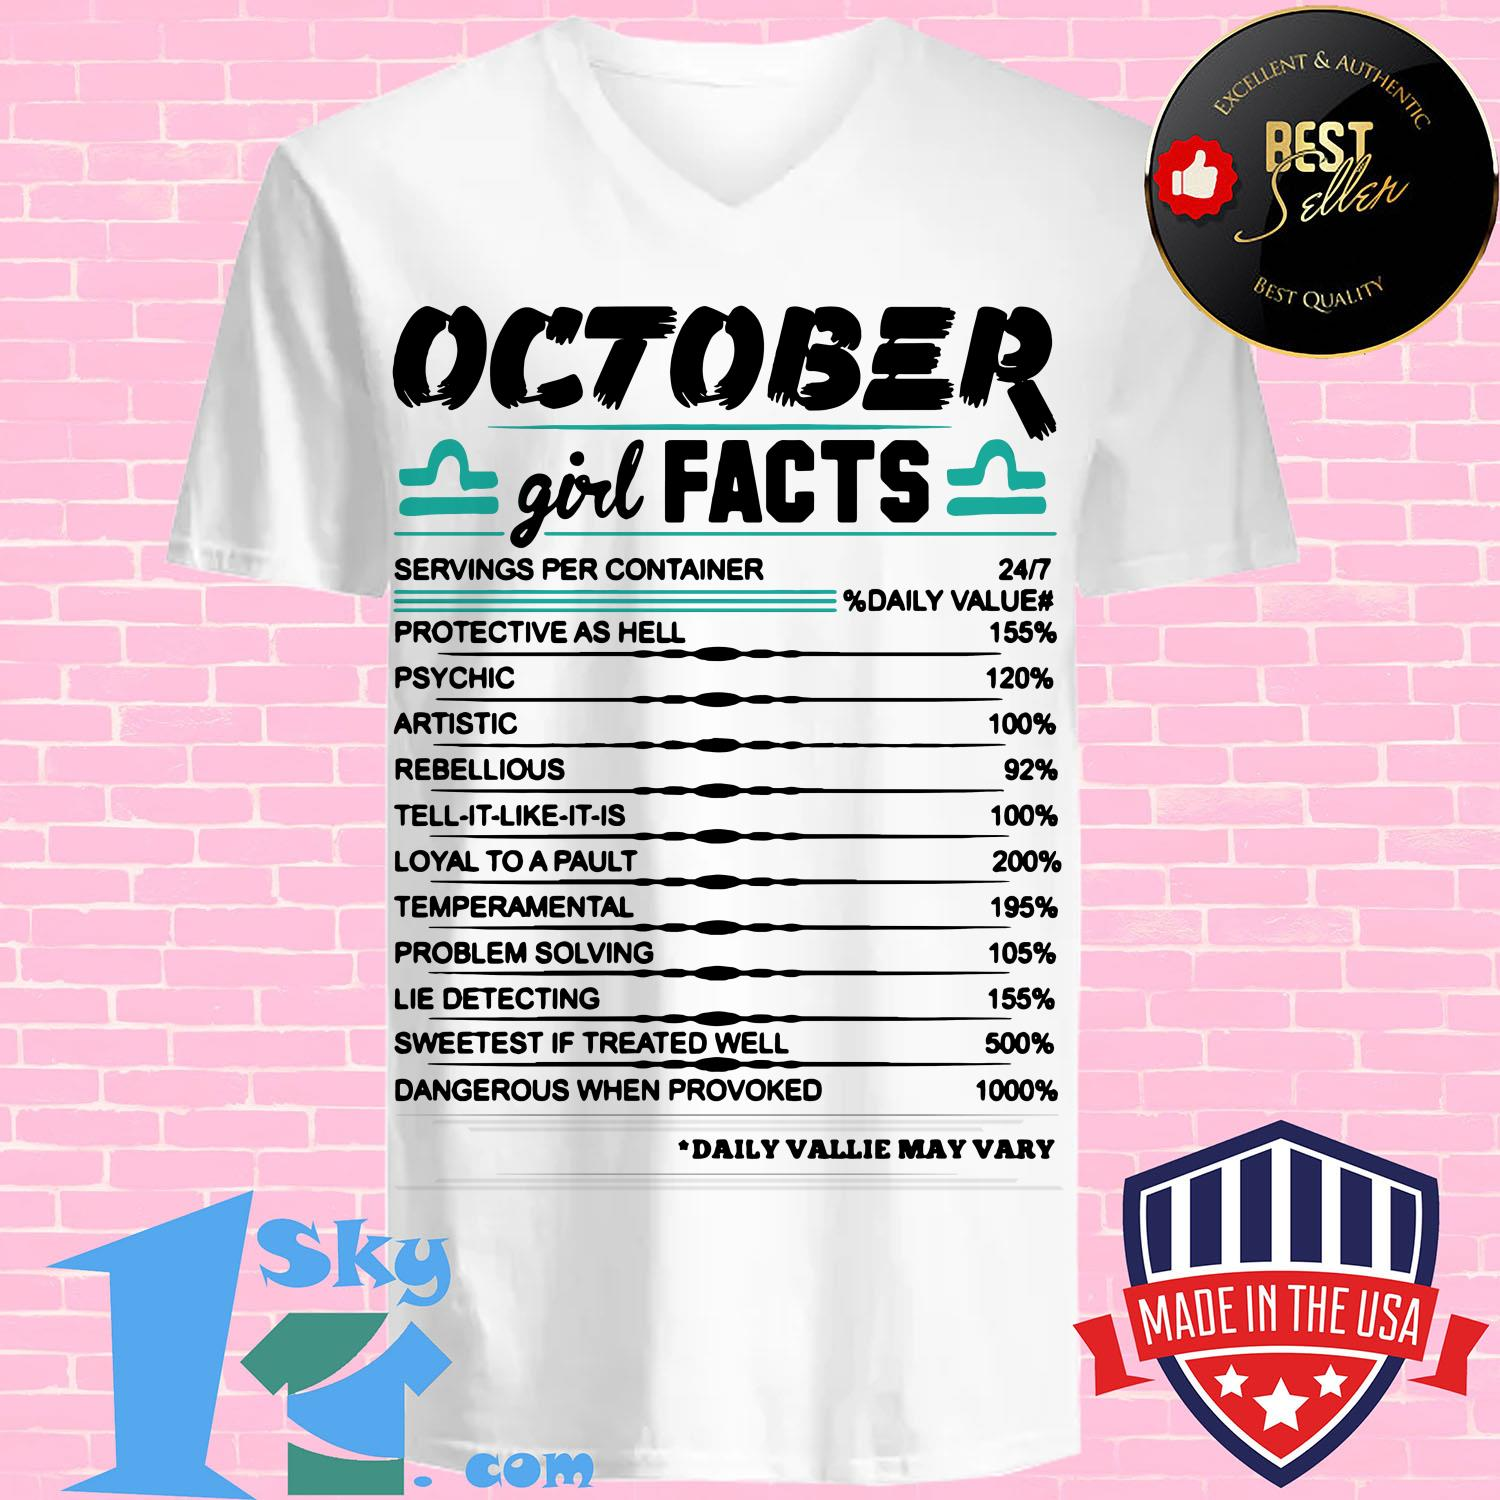 libra october girl facts serving per container protective as hell v neck - Libra October girl facts serving per container protective as hell shirt